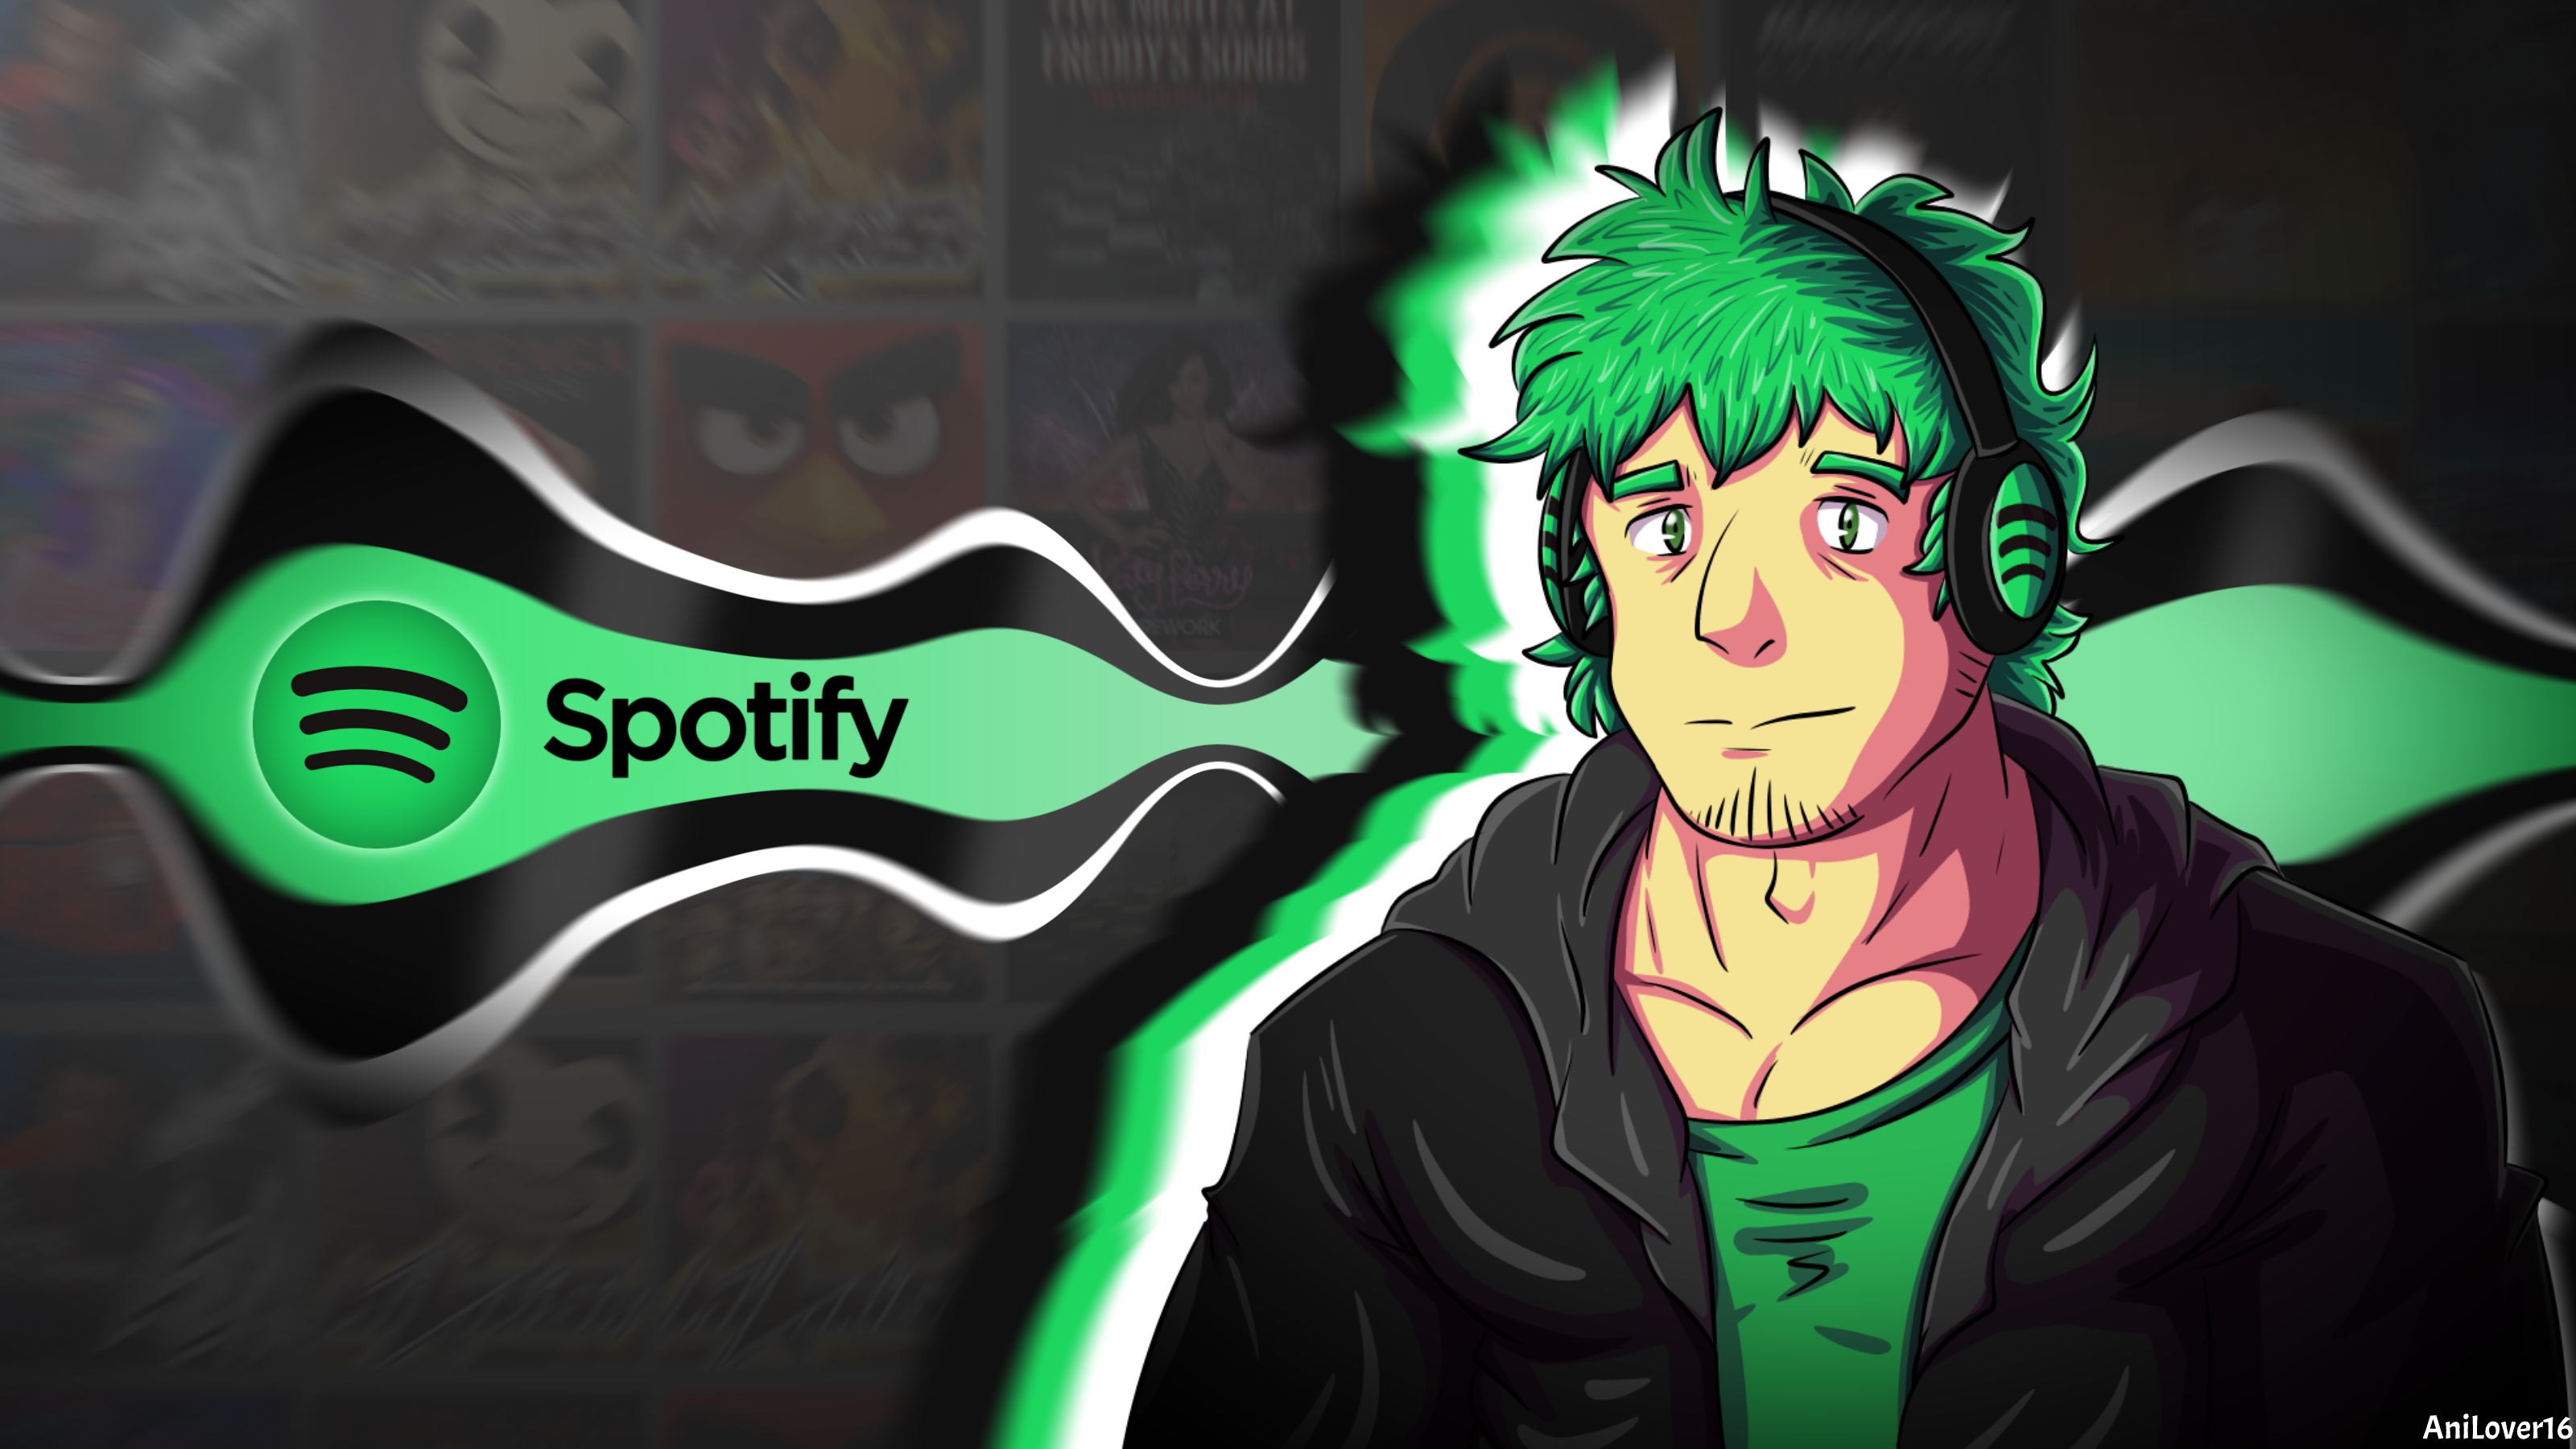 Spotify Wallpaper Posted By Ethan Walker